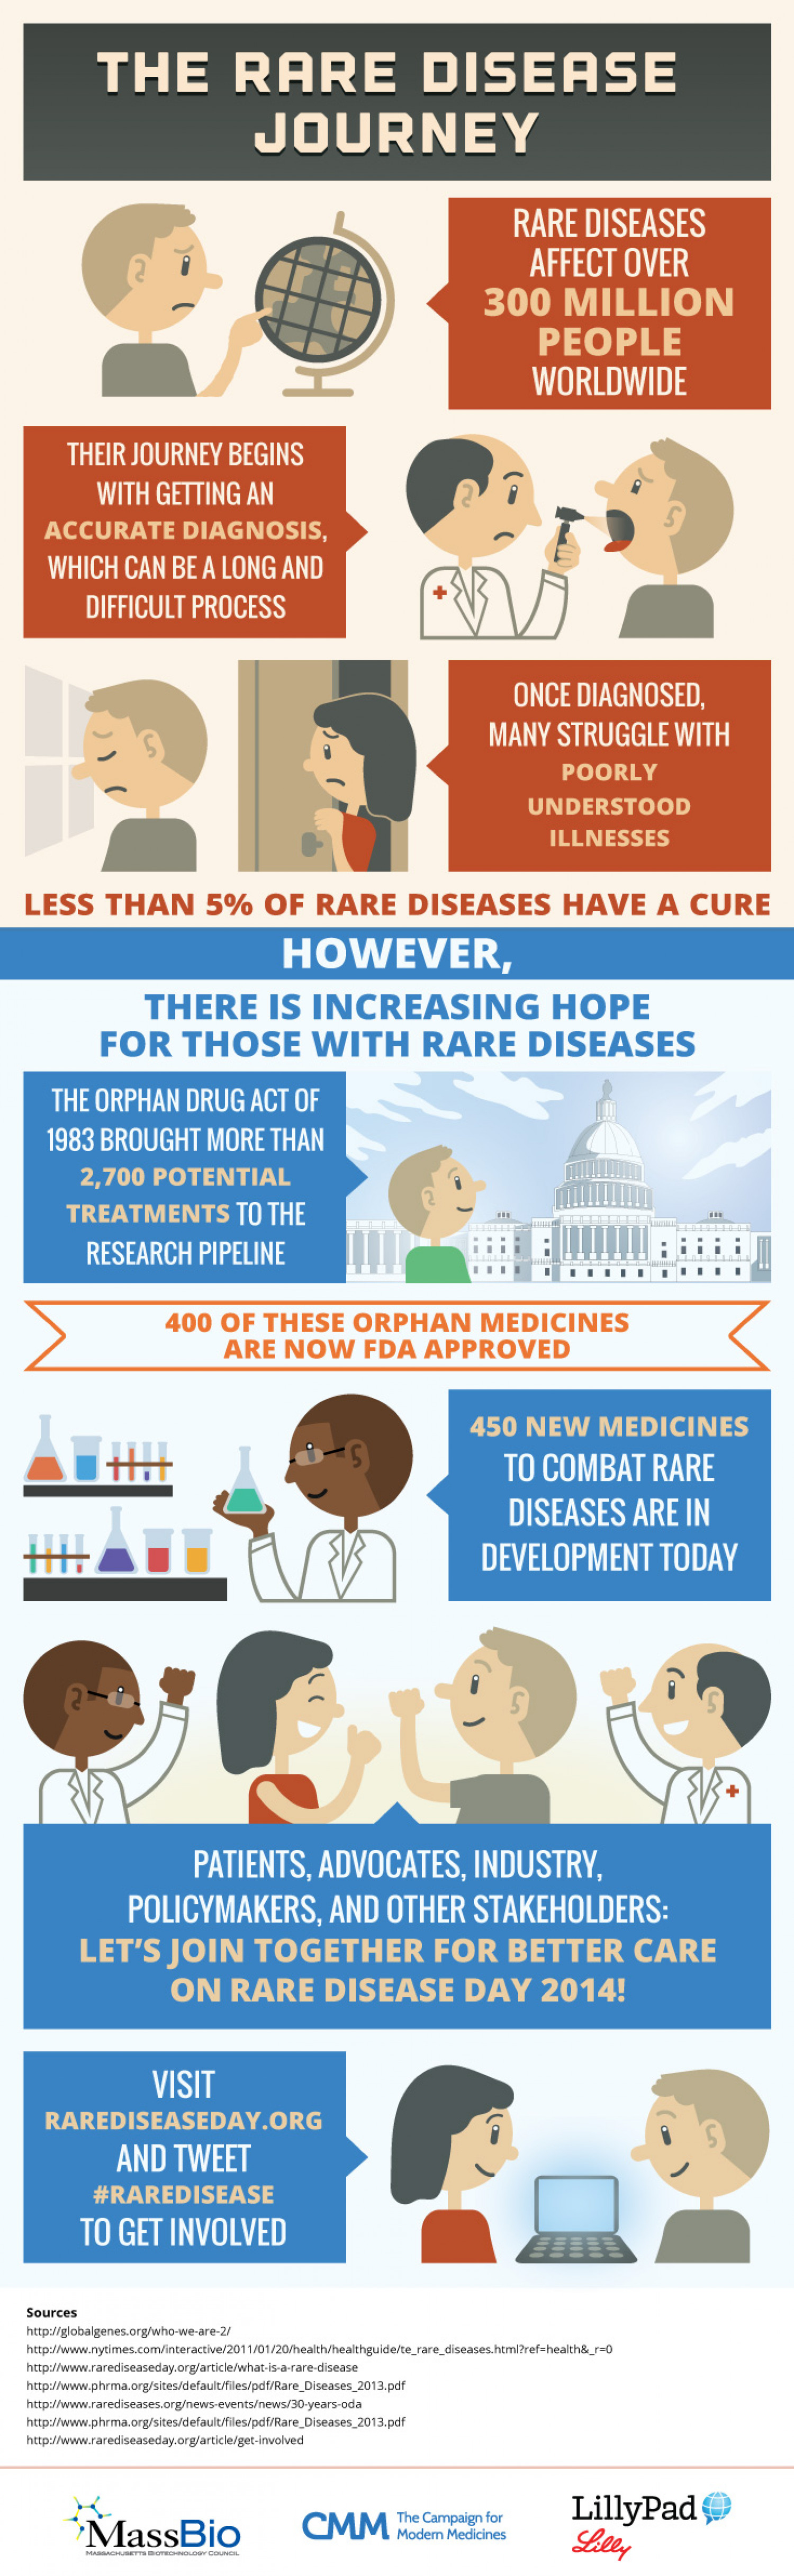 The Rare Disease Journey Infographic